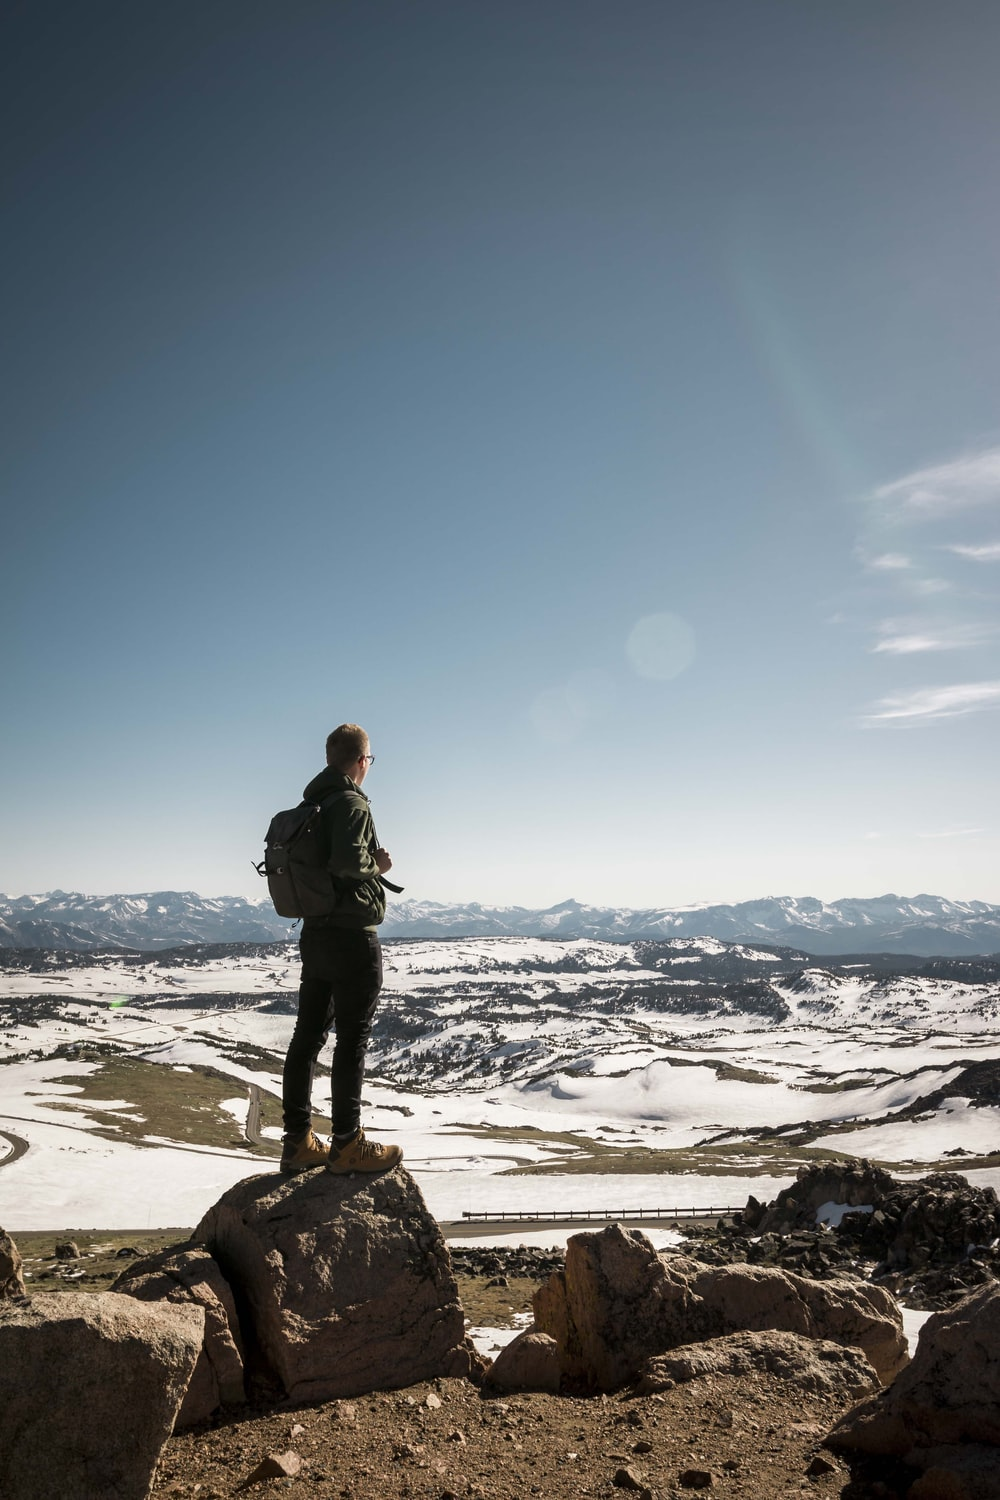 man standing on stone overlooking snow-capped mountain